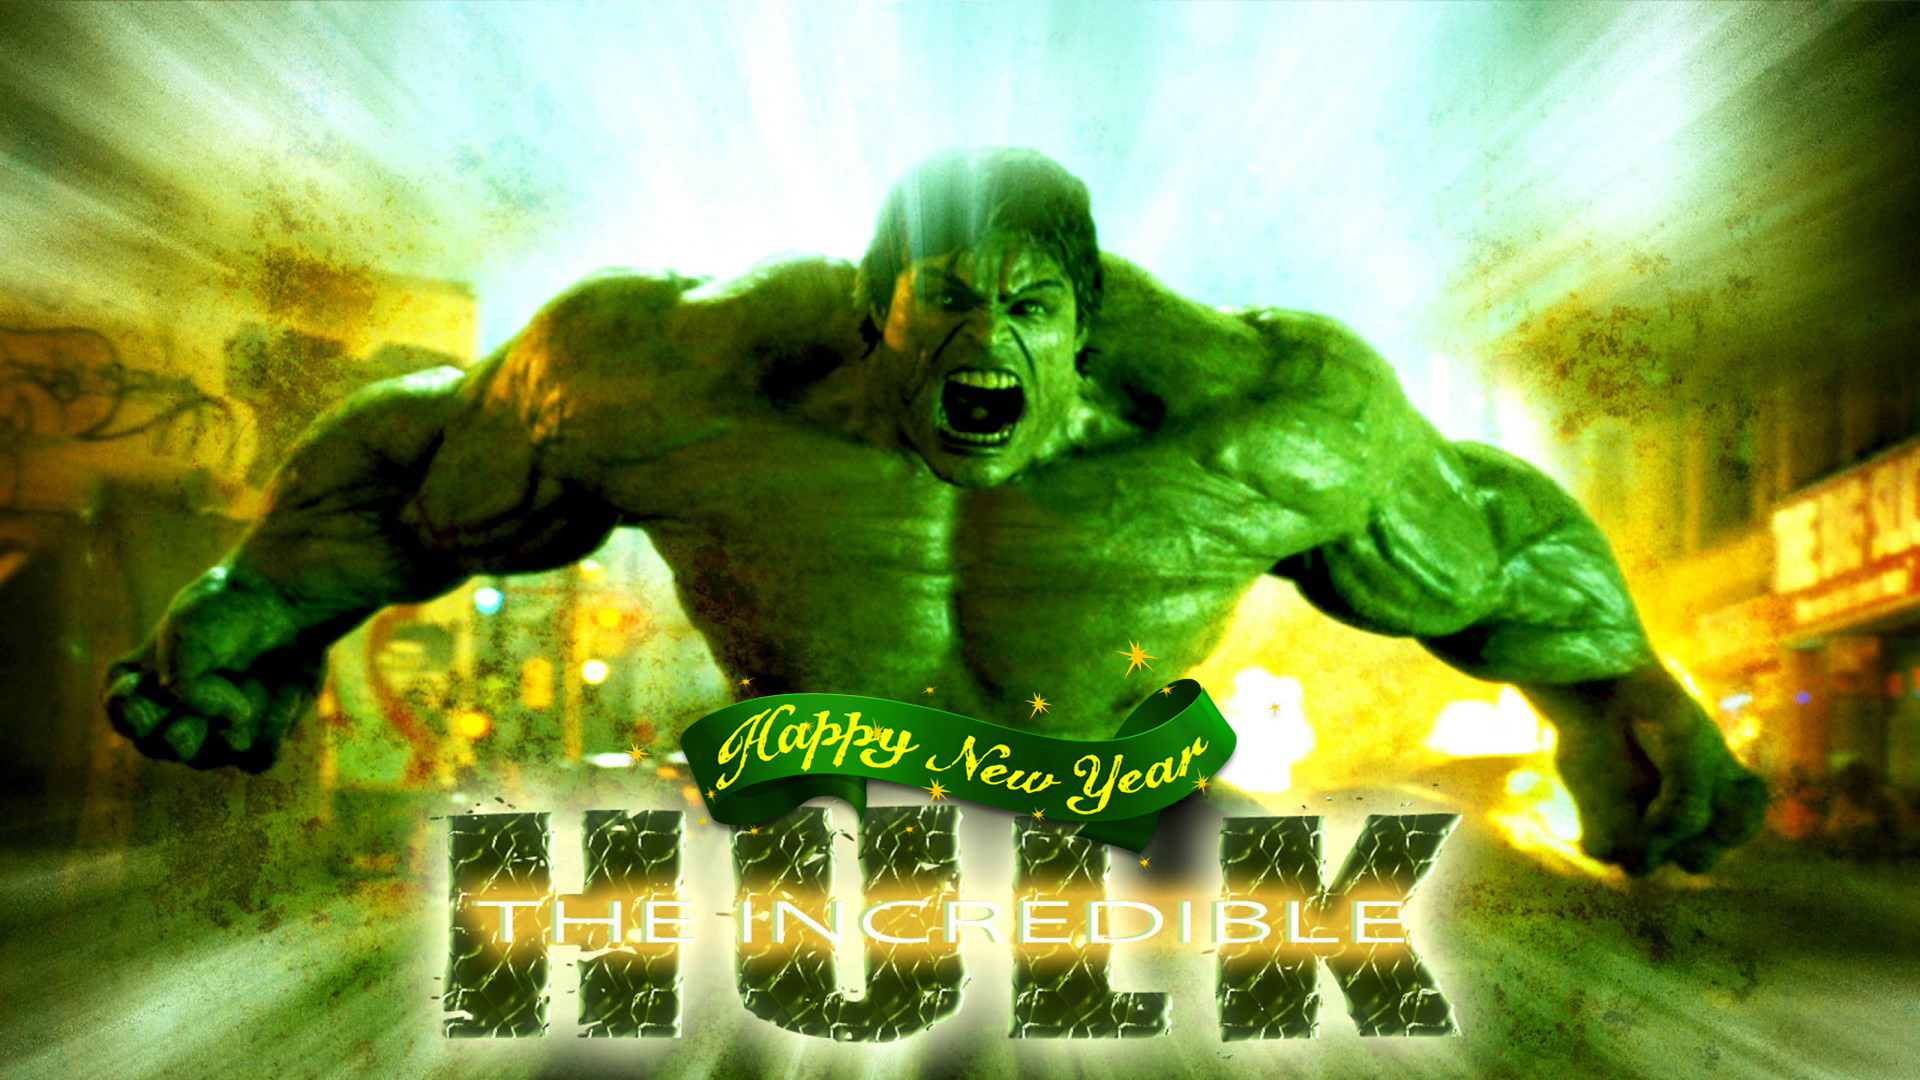 happy new year incredible hulk marvel avenger strongest superhero hd wallpaper